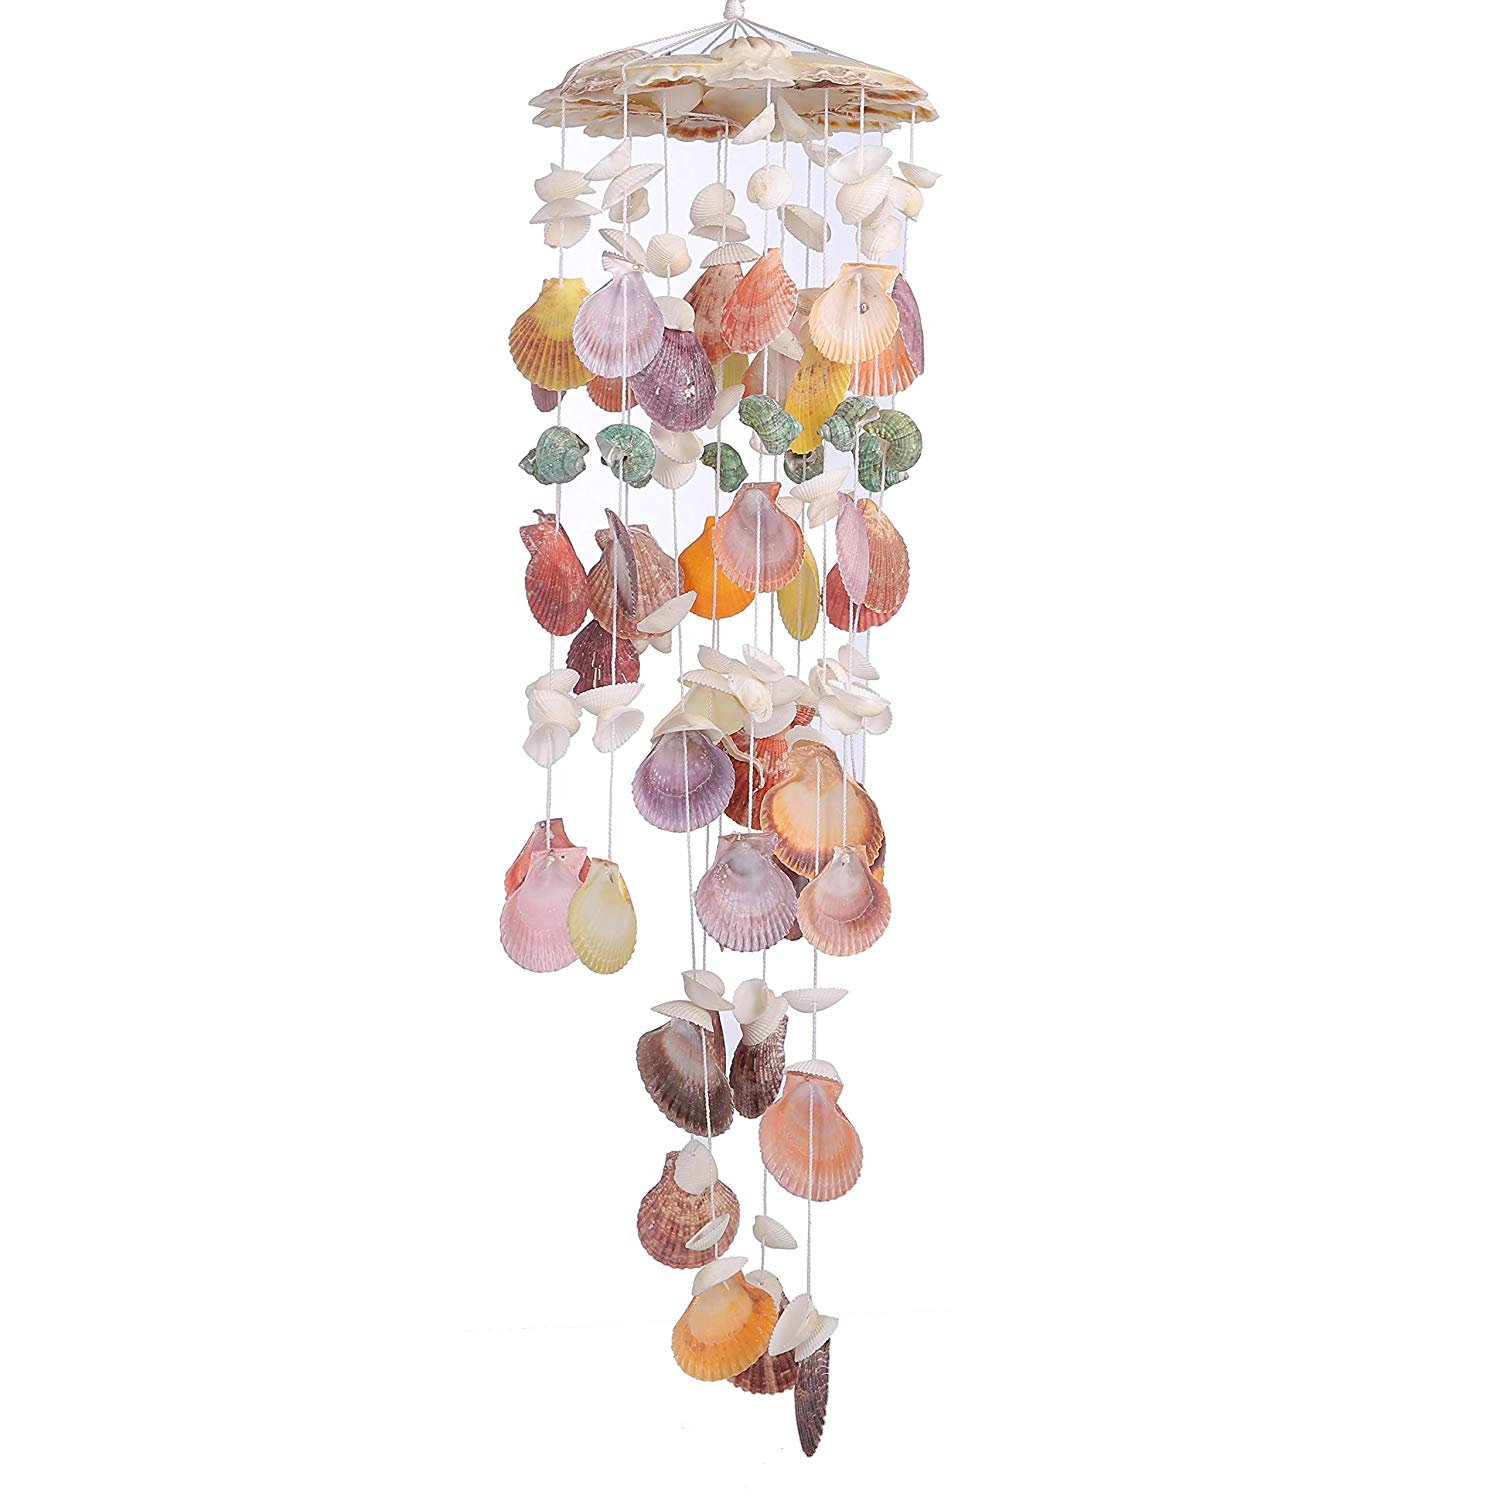 Laddawan Nature's melody Wind Chimes